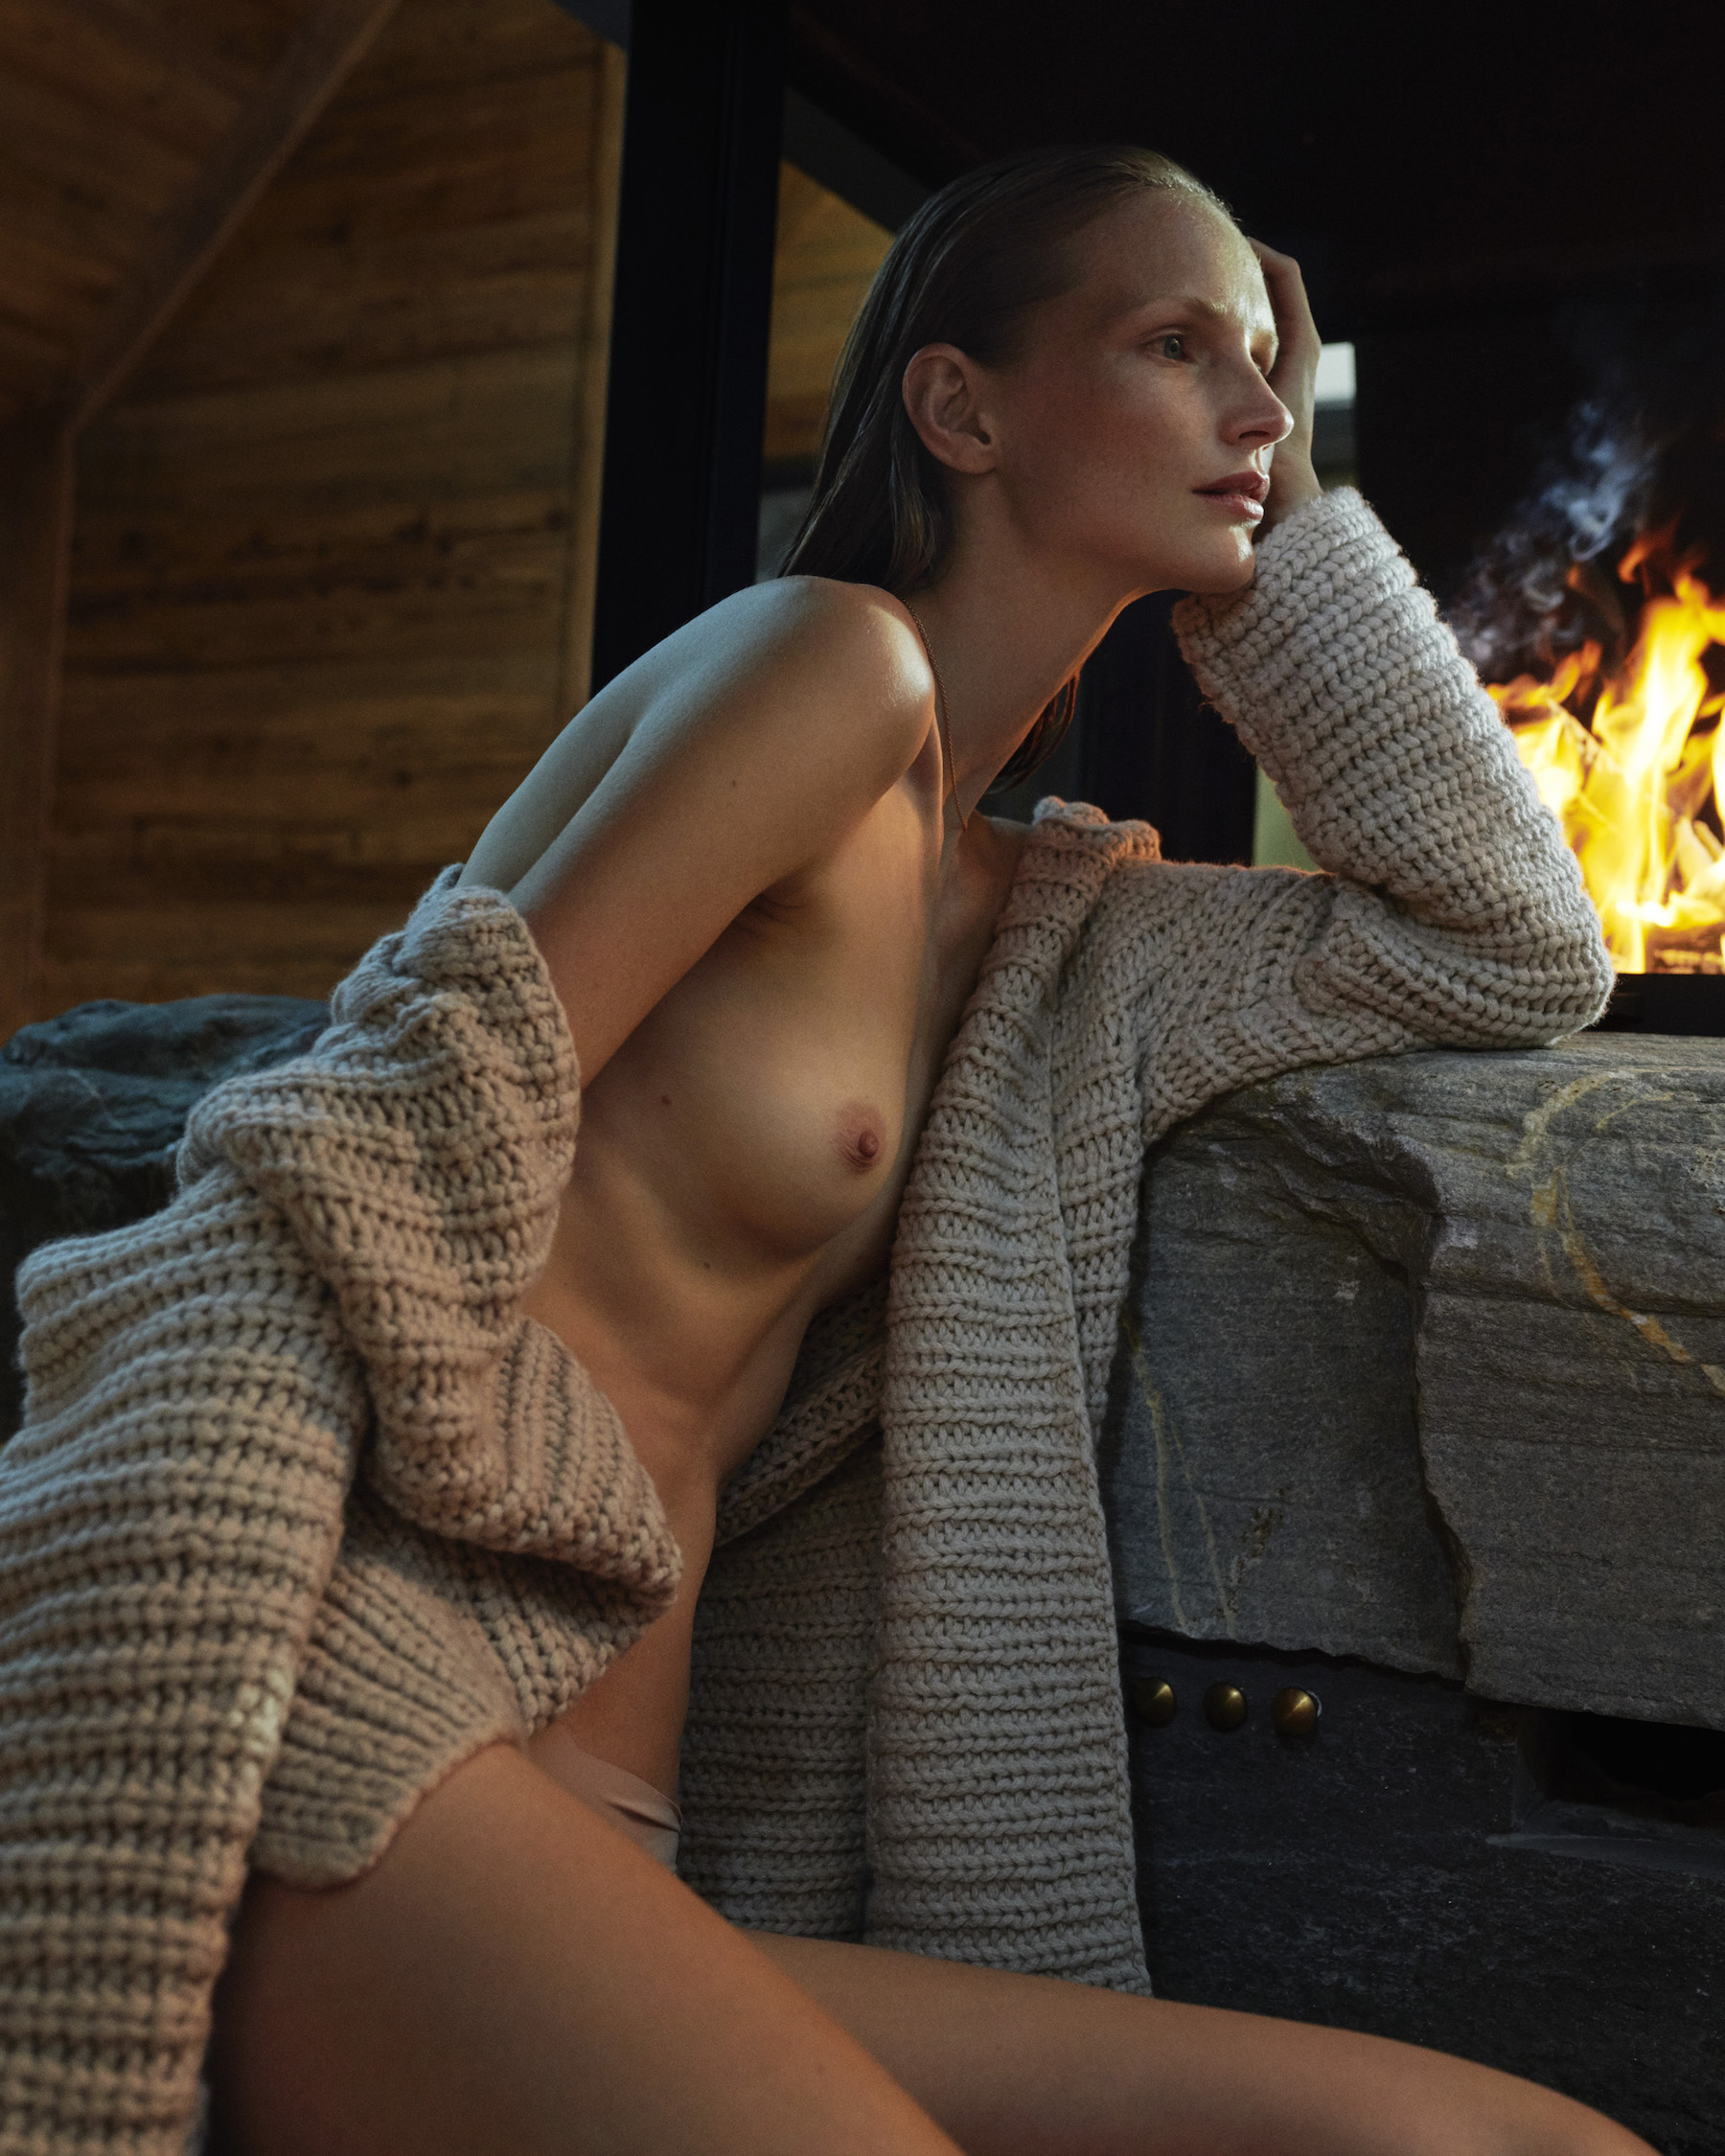 Katrin Thormann by Tobias Lundkvist for Elle Germany